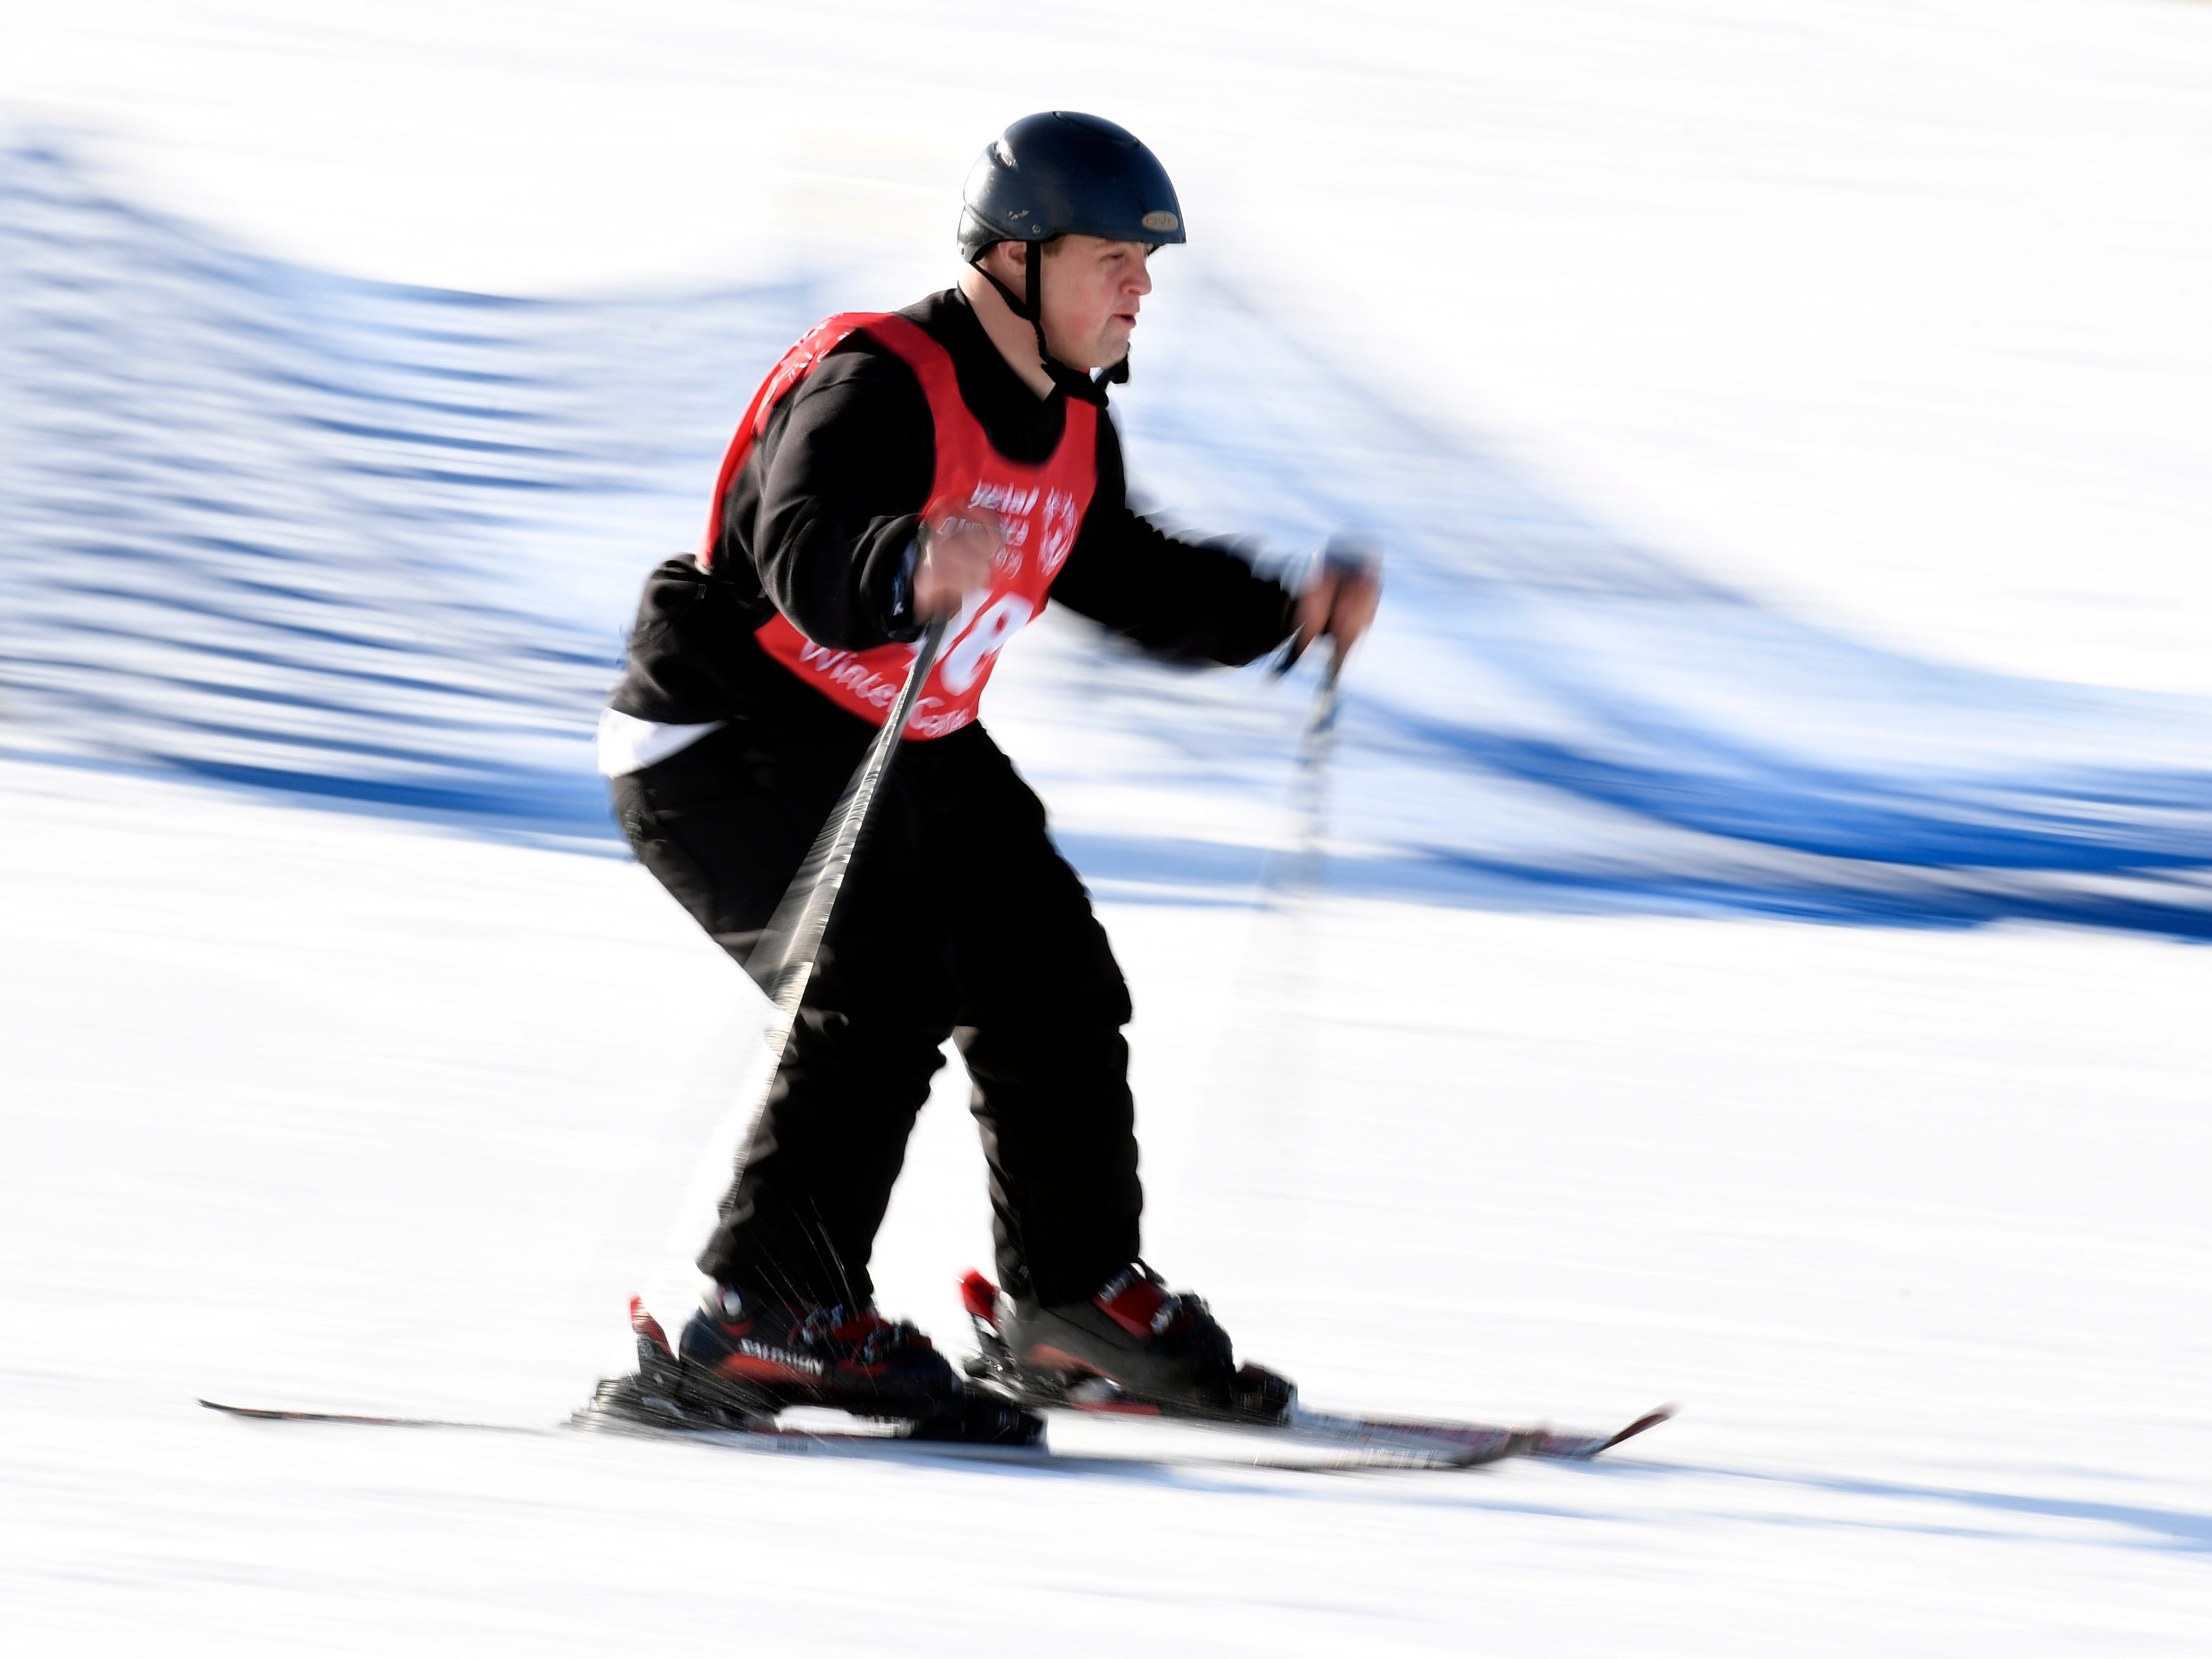 Todd Gensheimer of Budd Lake placed first in the giant slalom during the Special Olympics New Jersey 2019 Winter Games on Tuesday, Feb. 5, 2019, in Vernon.